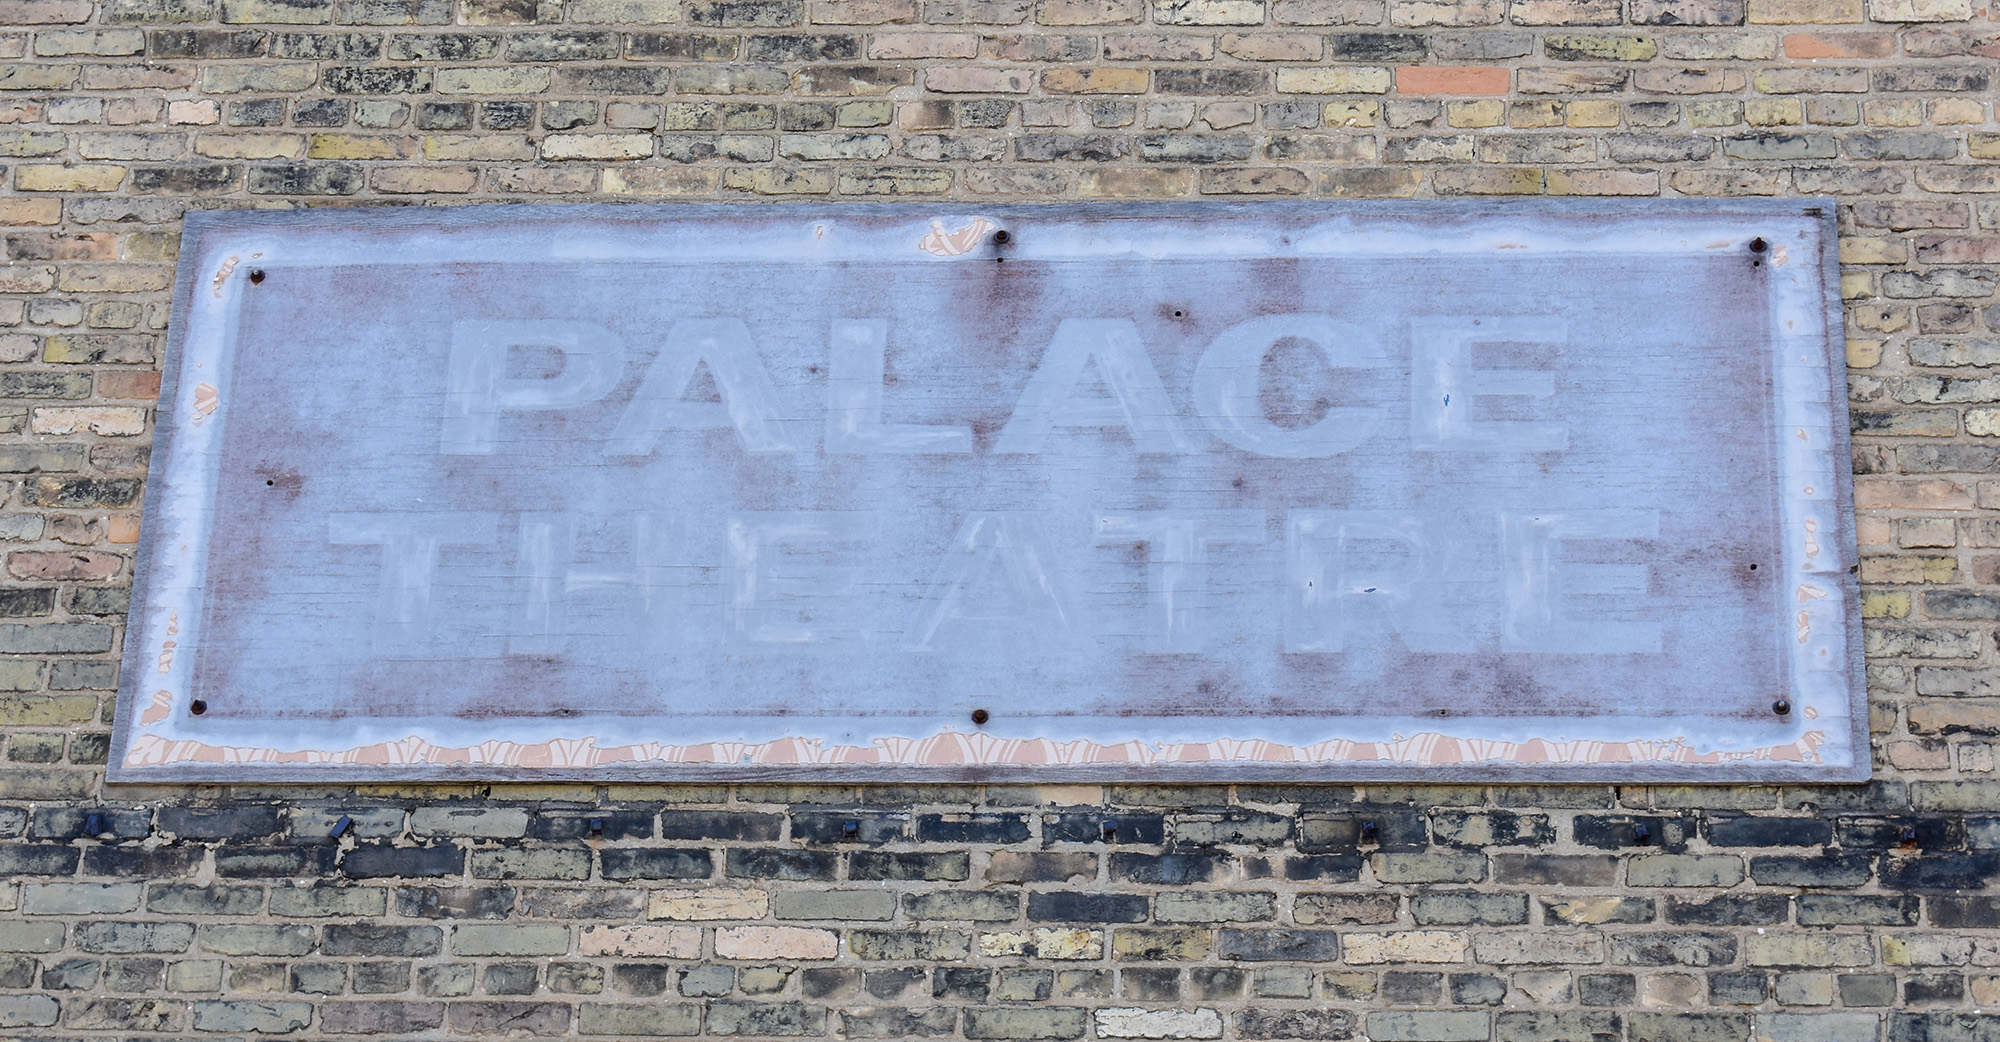 A faded sign says palace theatre